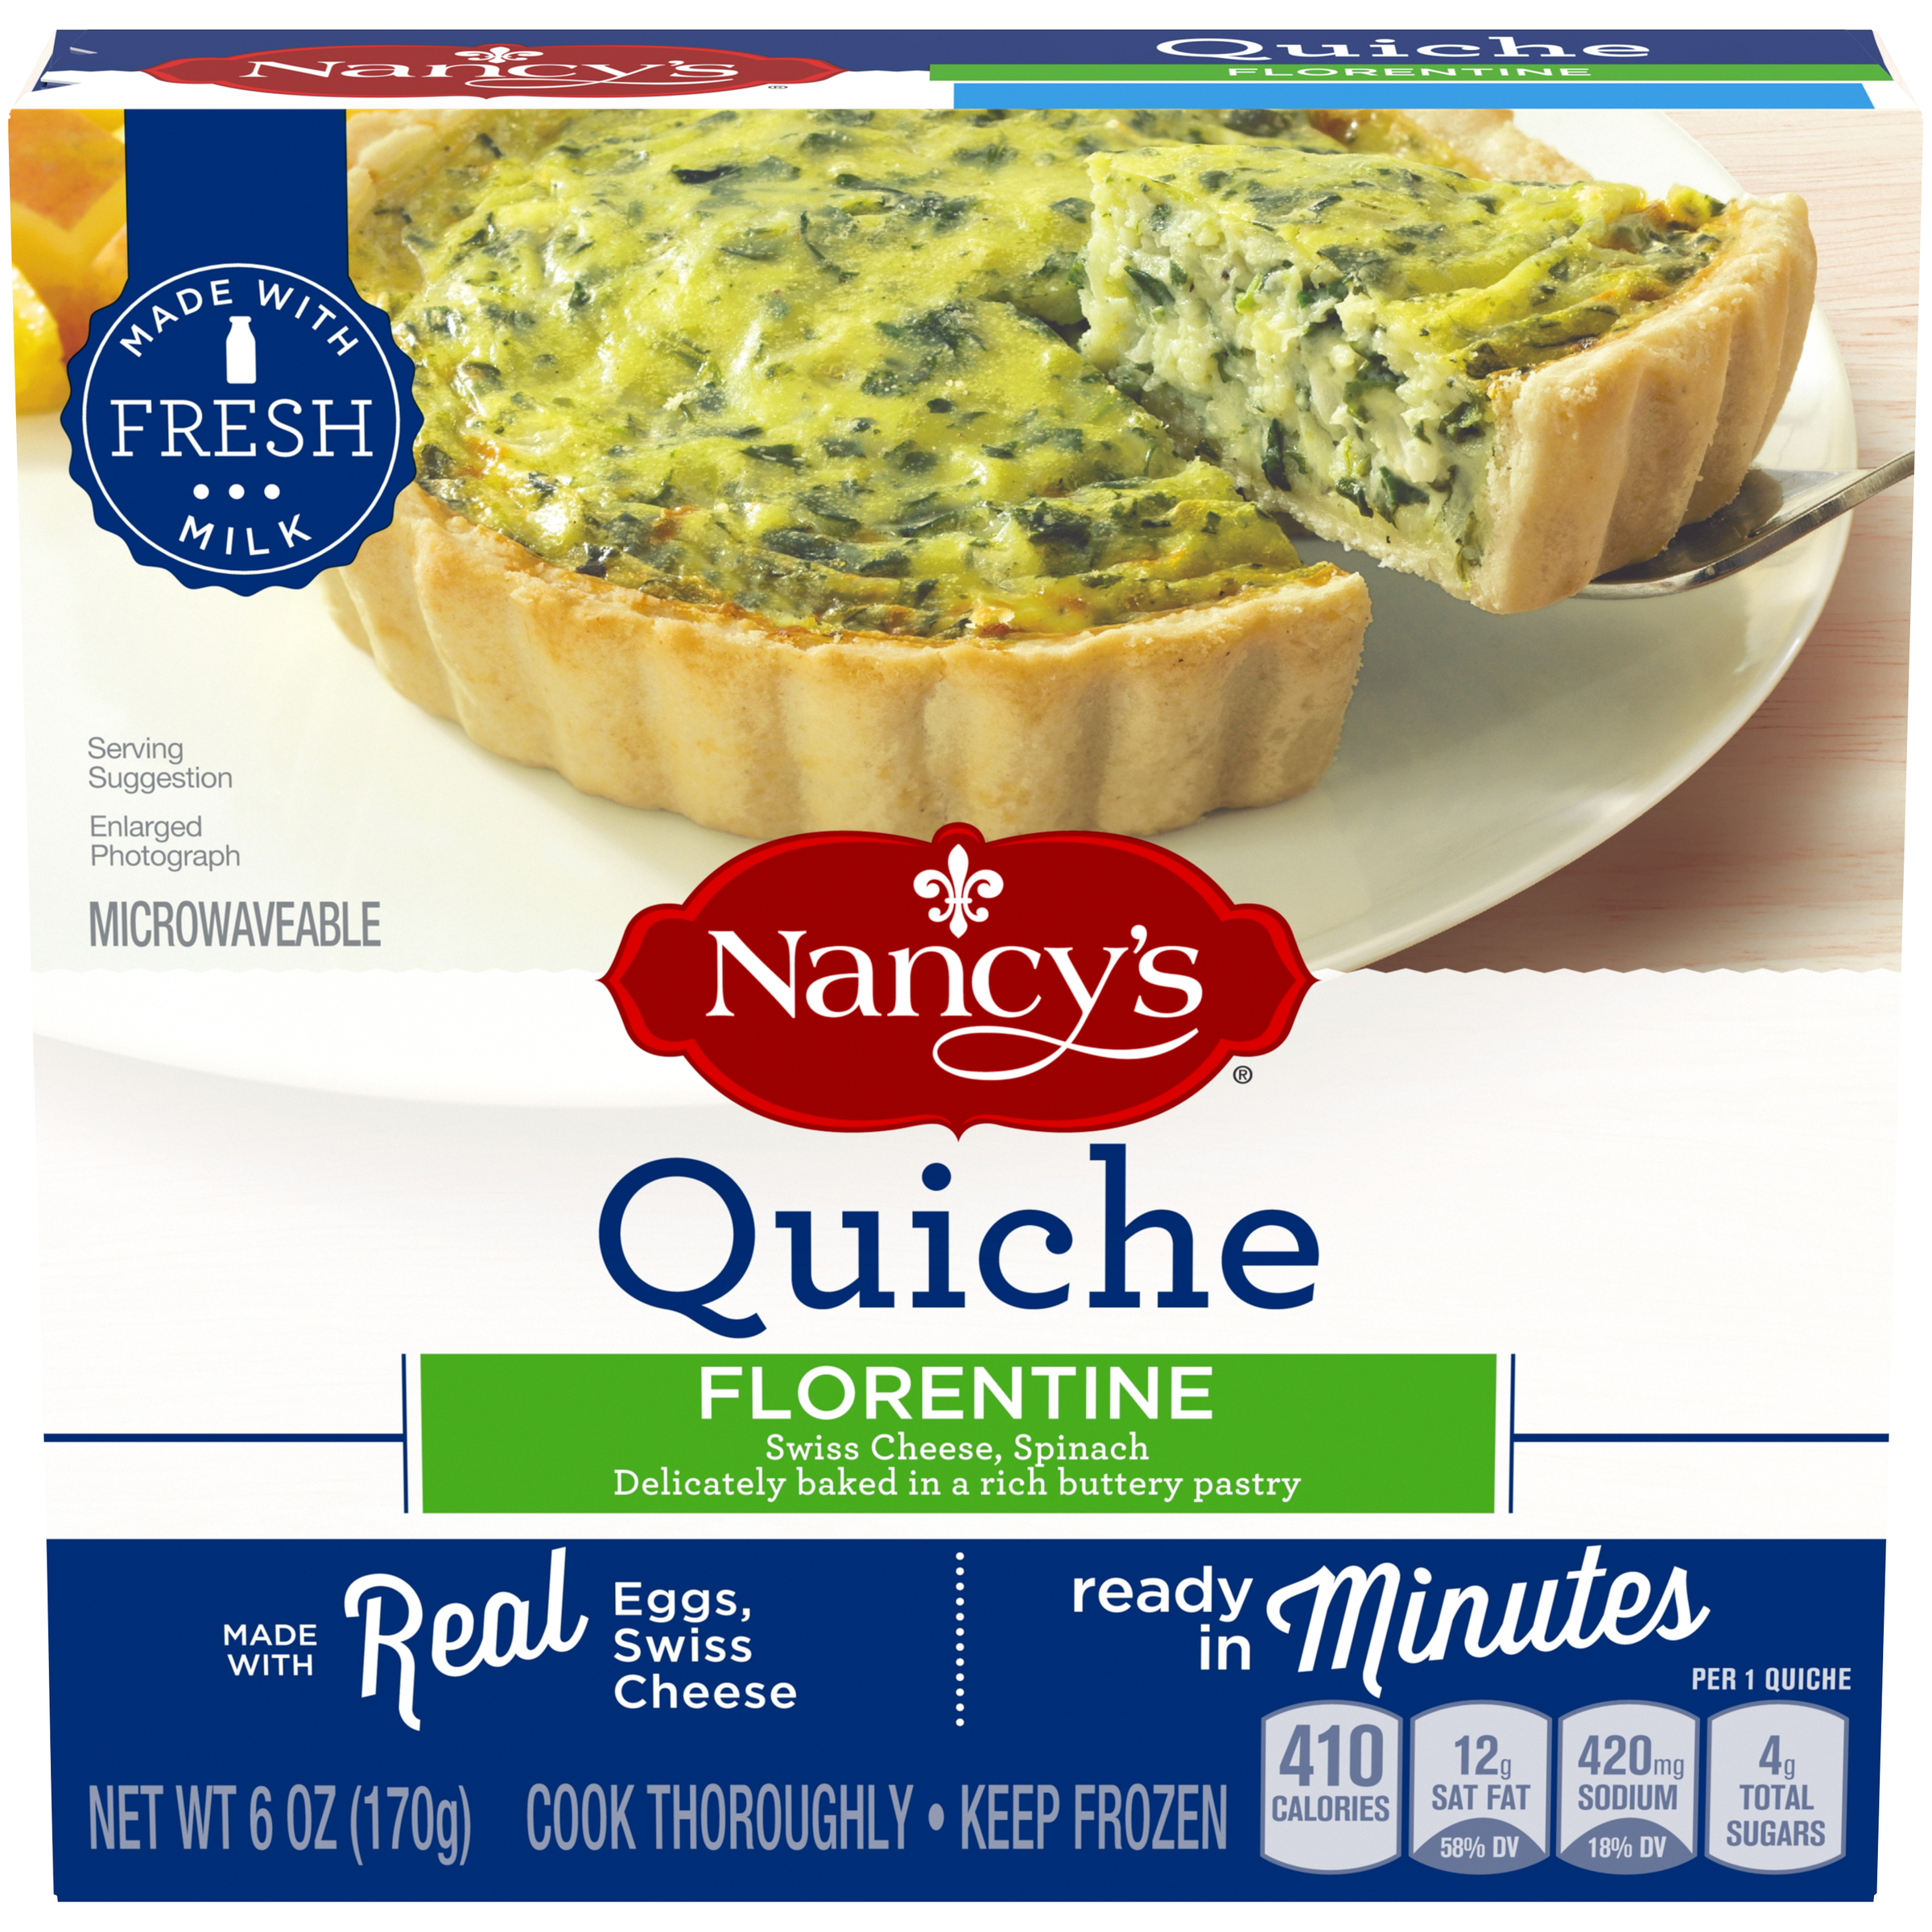 Nancy's(r) Florentine Quiche 6 oz. Box